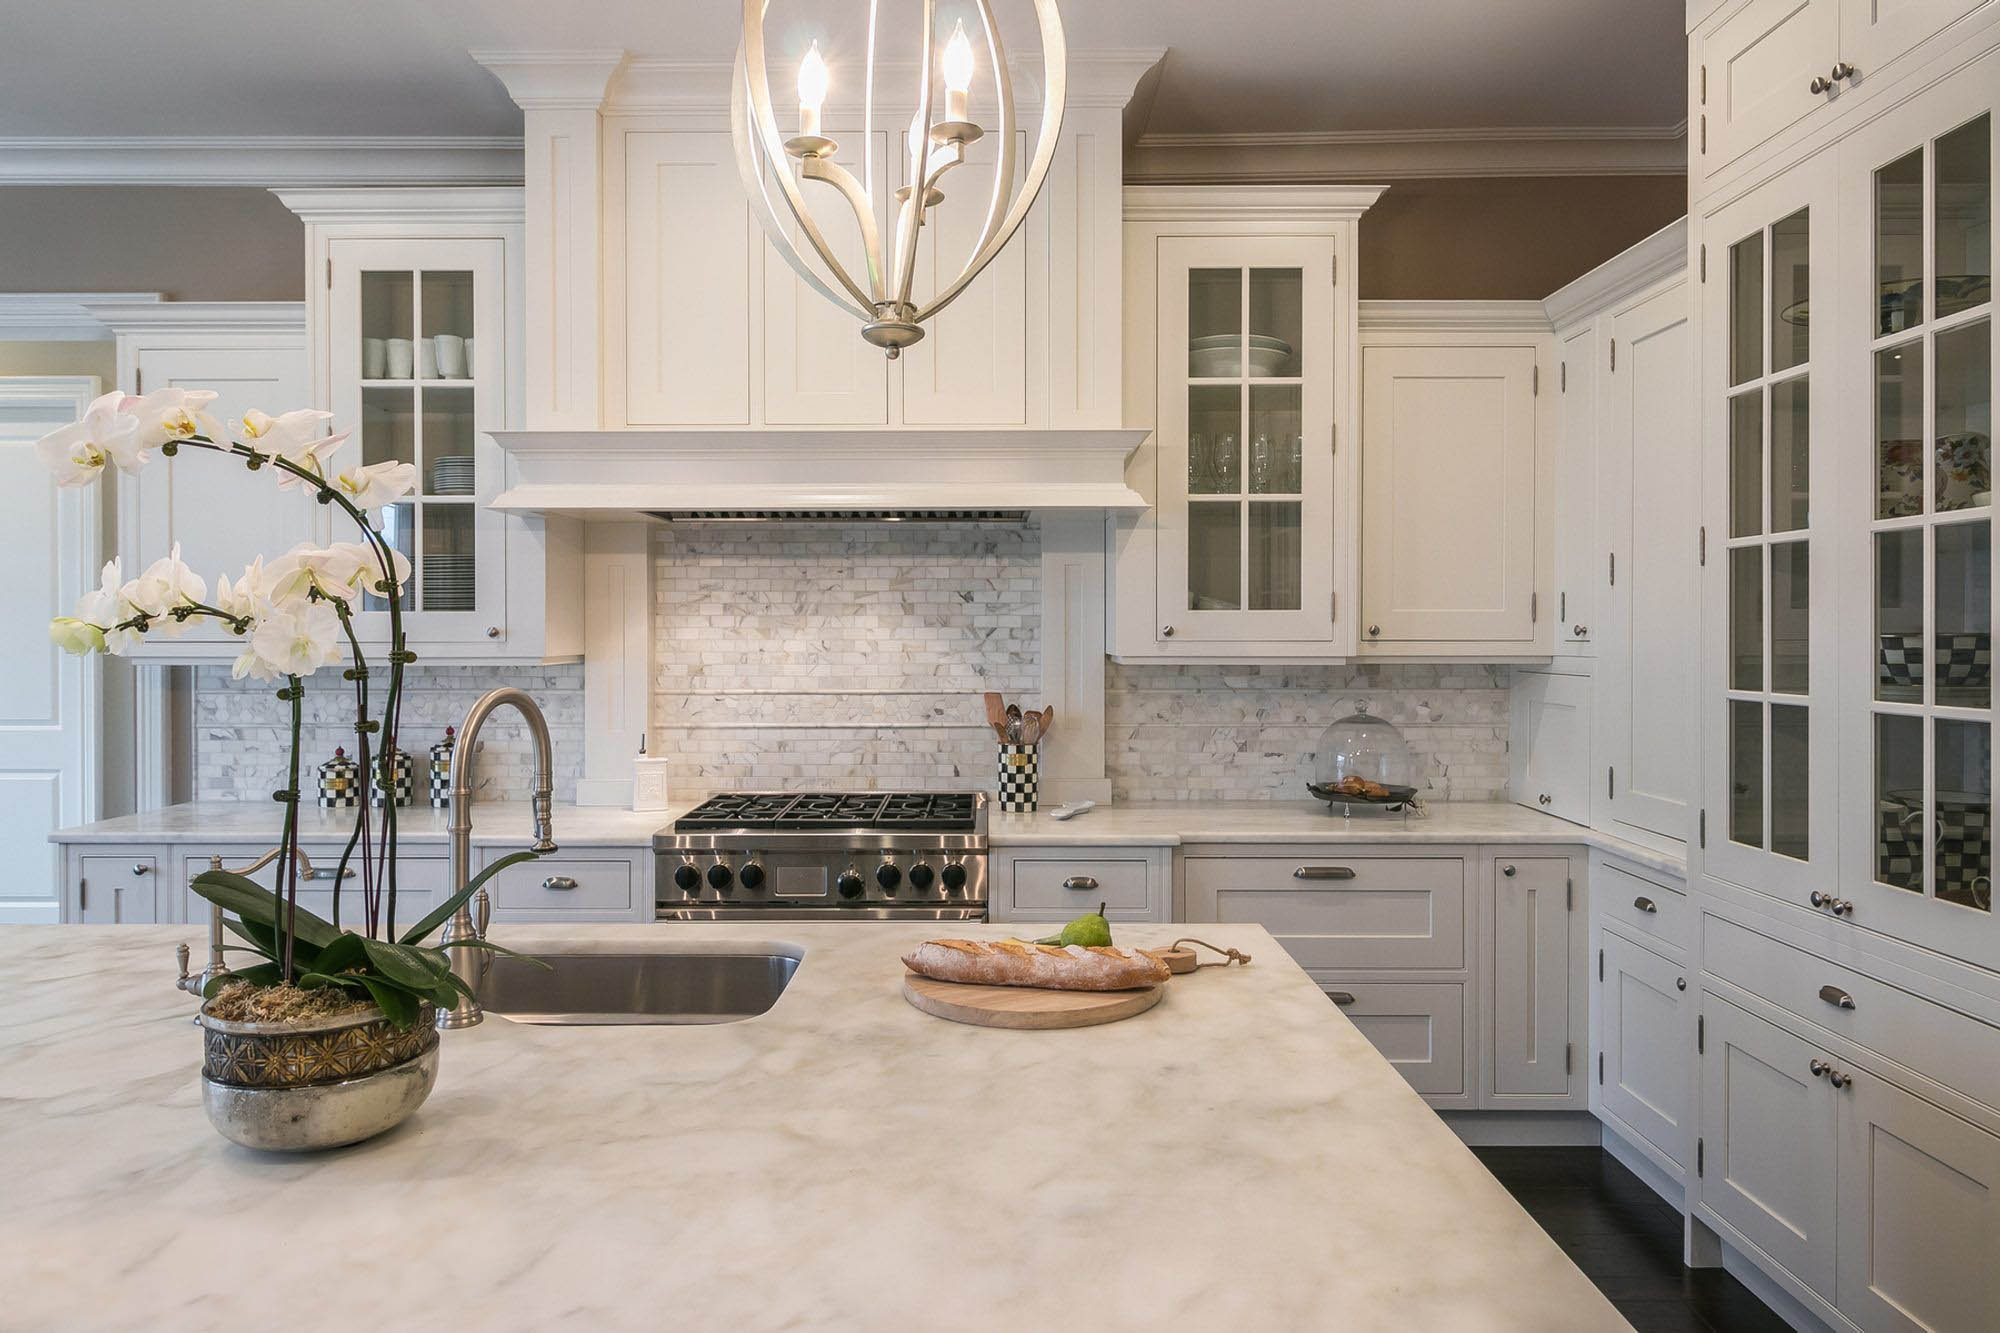 White marble quartz with white cabinets and real marble backsplash. Dark hardwood floors with tan walls. quartz vs granite.